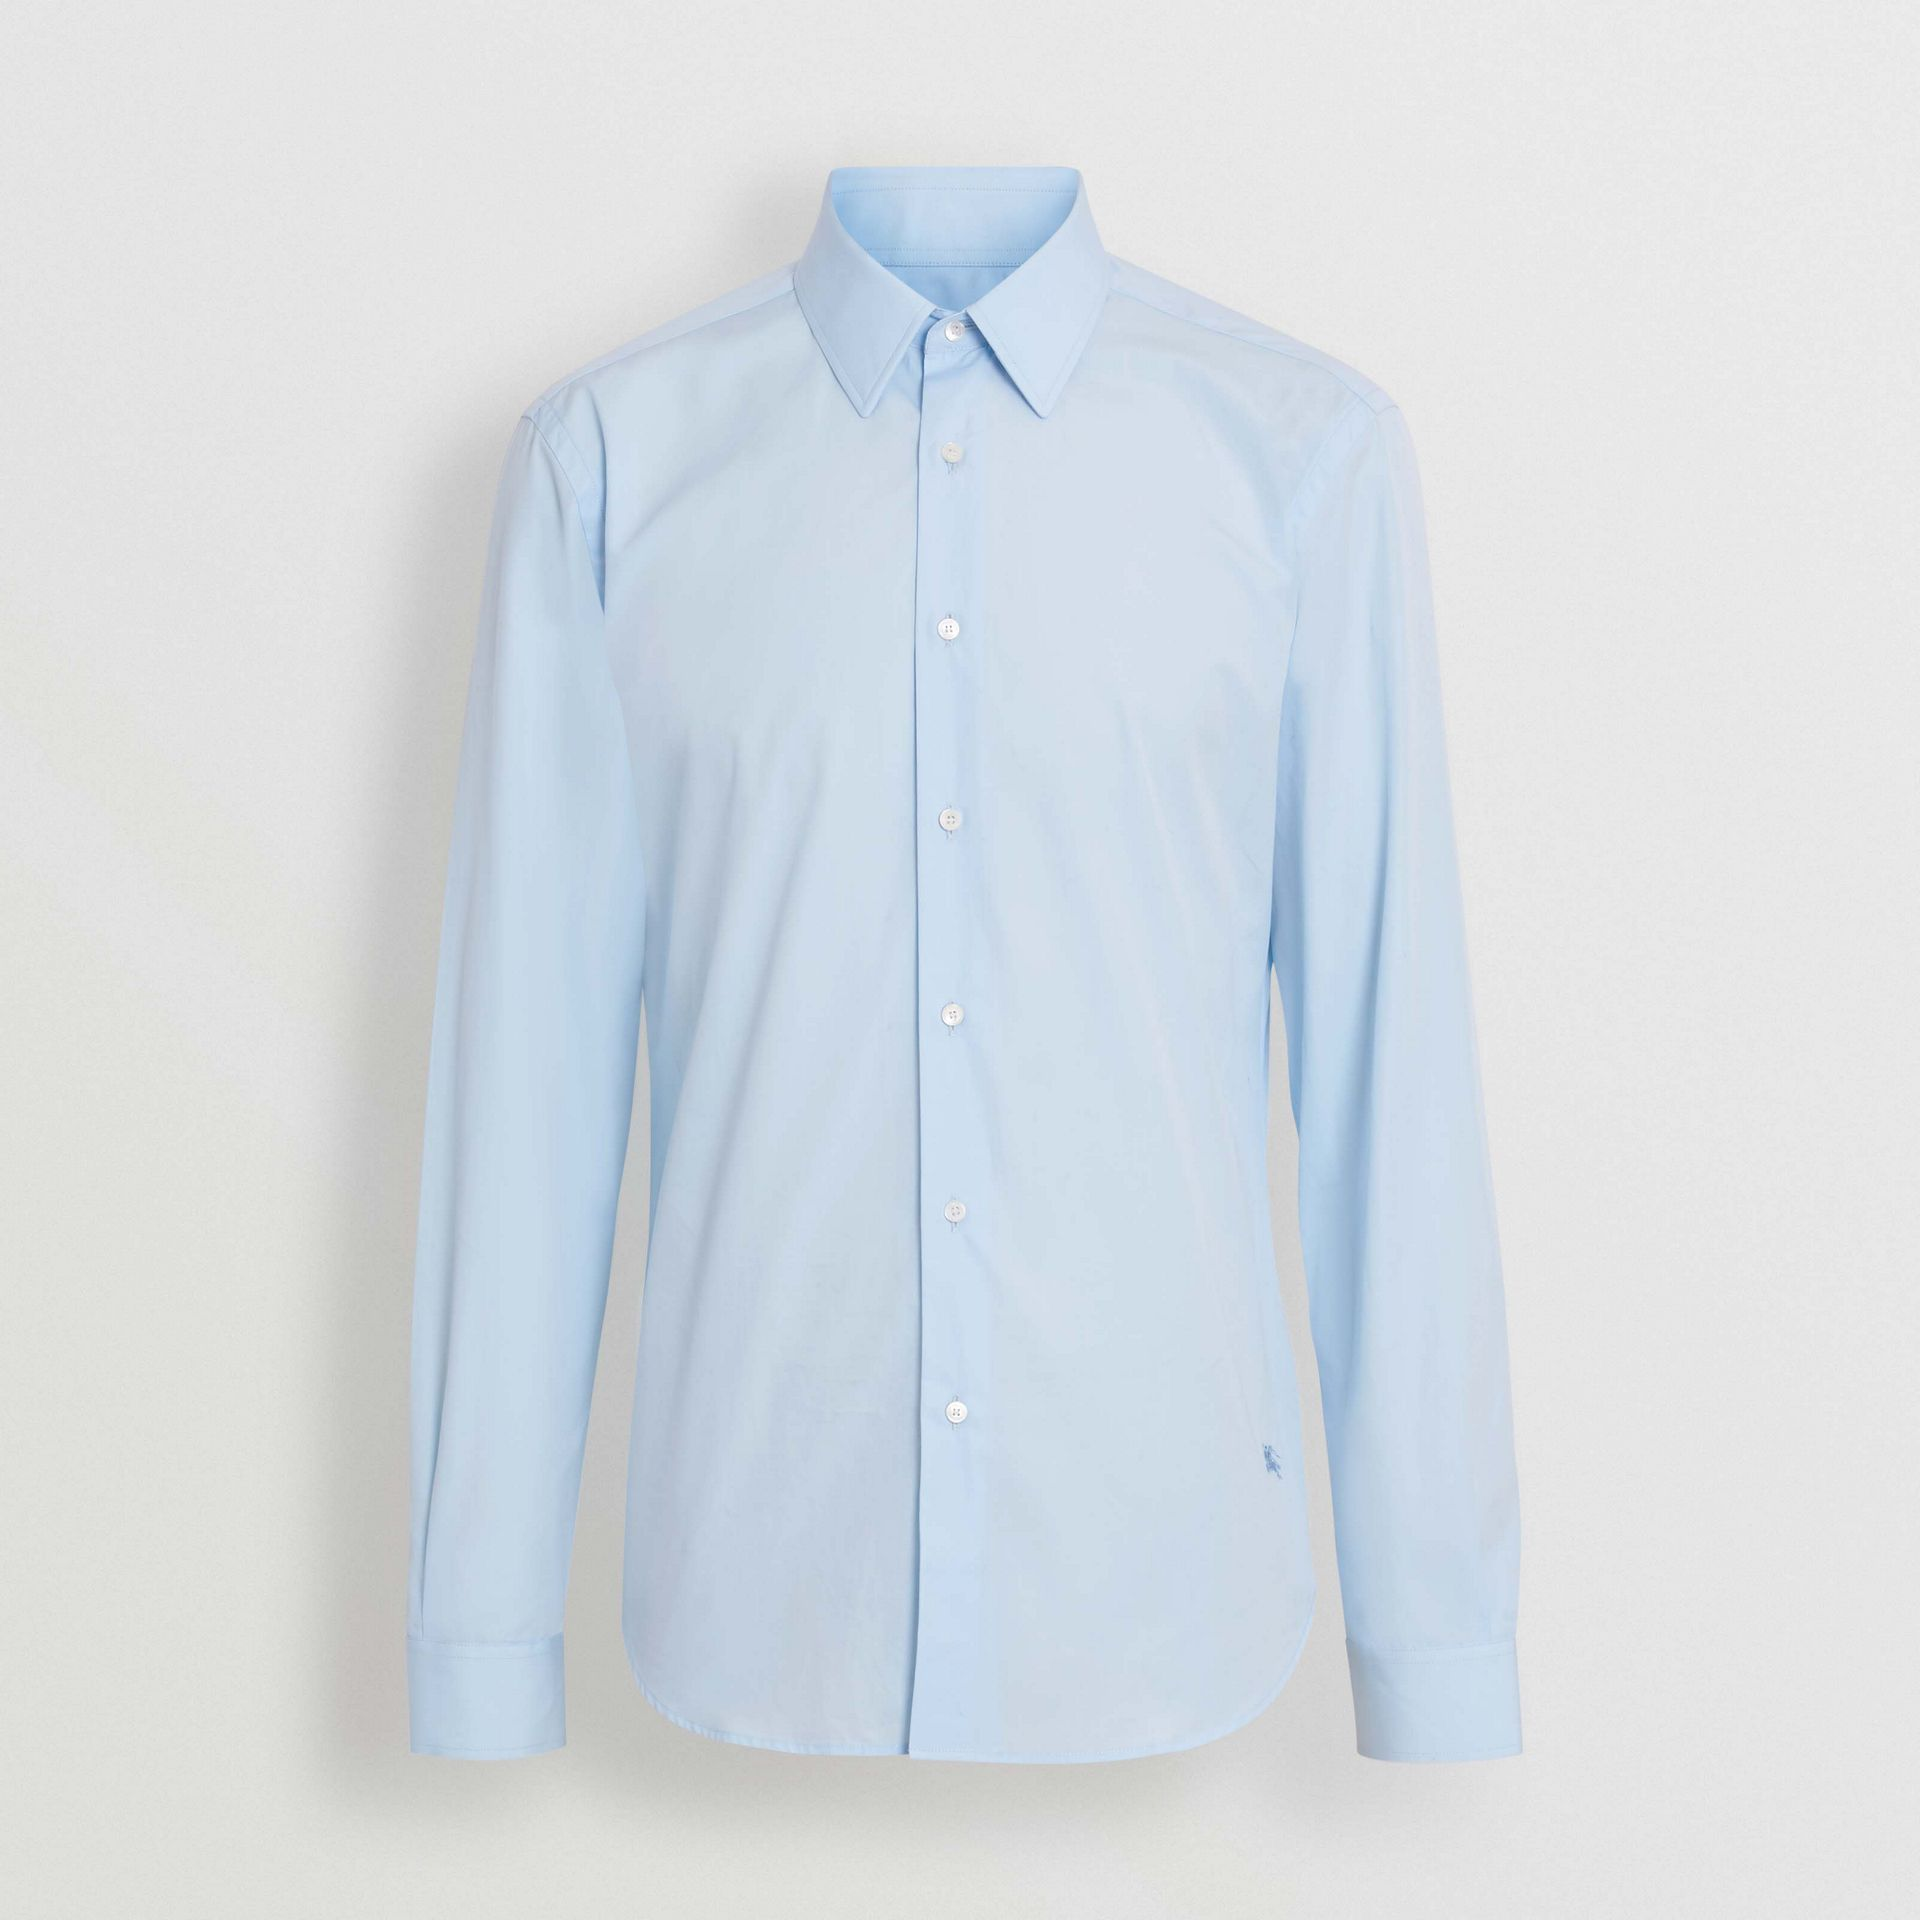 Slim Fit Cotton Poplin Shirt in City Blue - Men | Burberry United States - gallery image 3